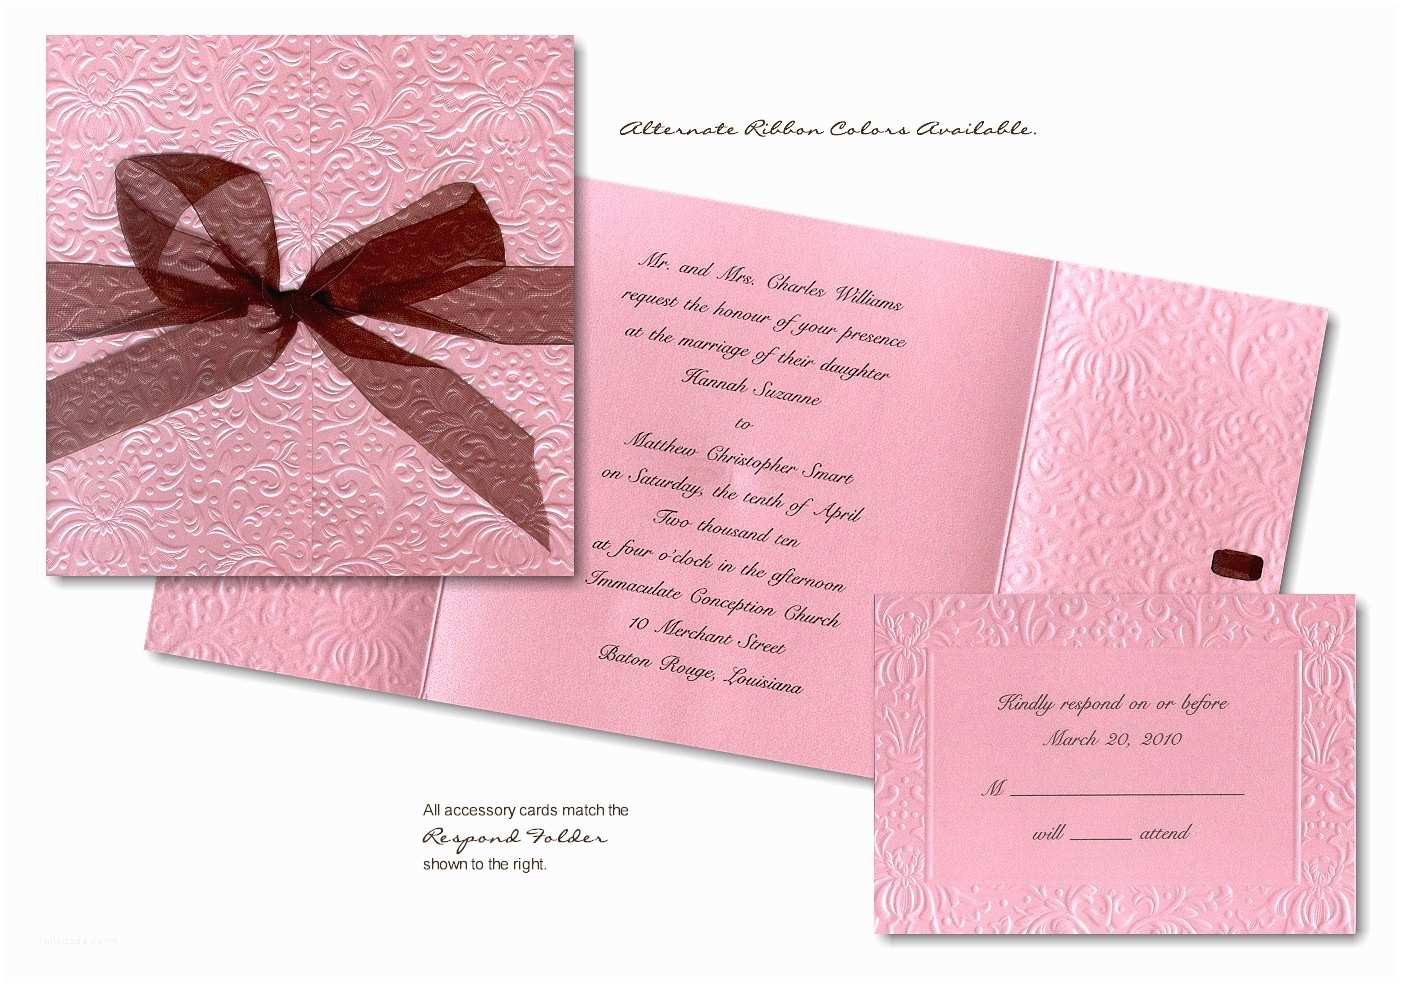 What Do You Say On A Wedding Invitation Pink Wedding Invitations Blue and Pink Wedding Invitations